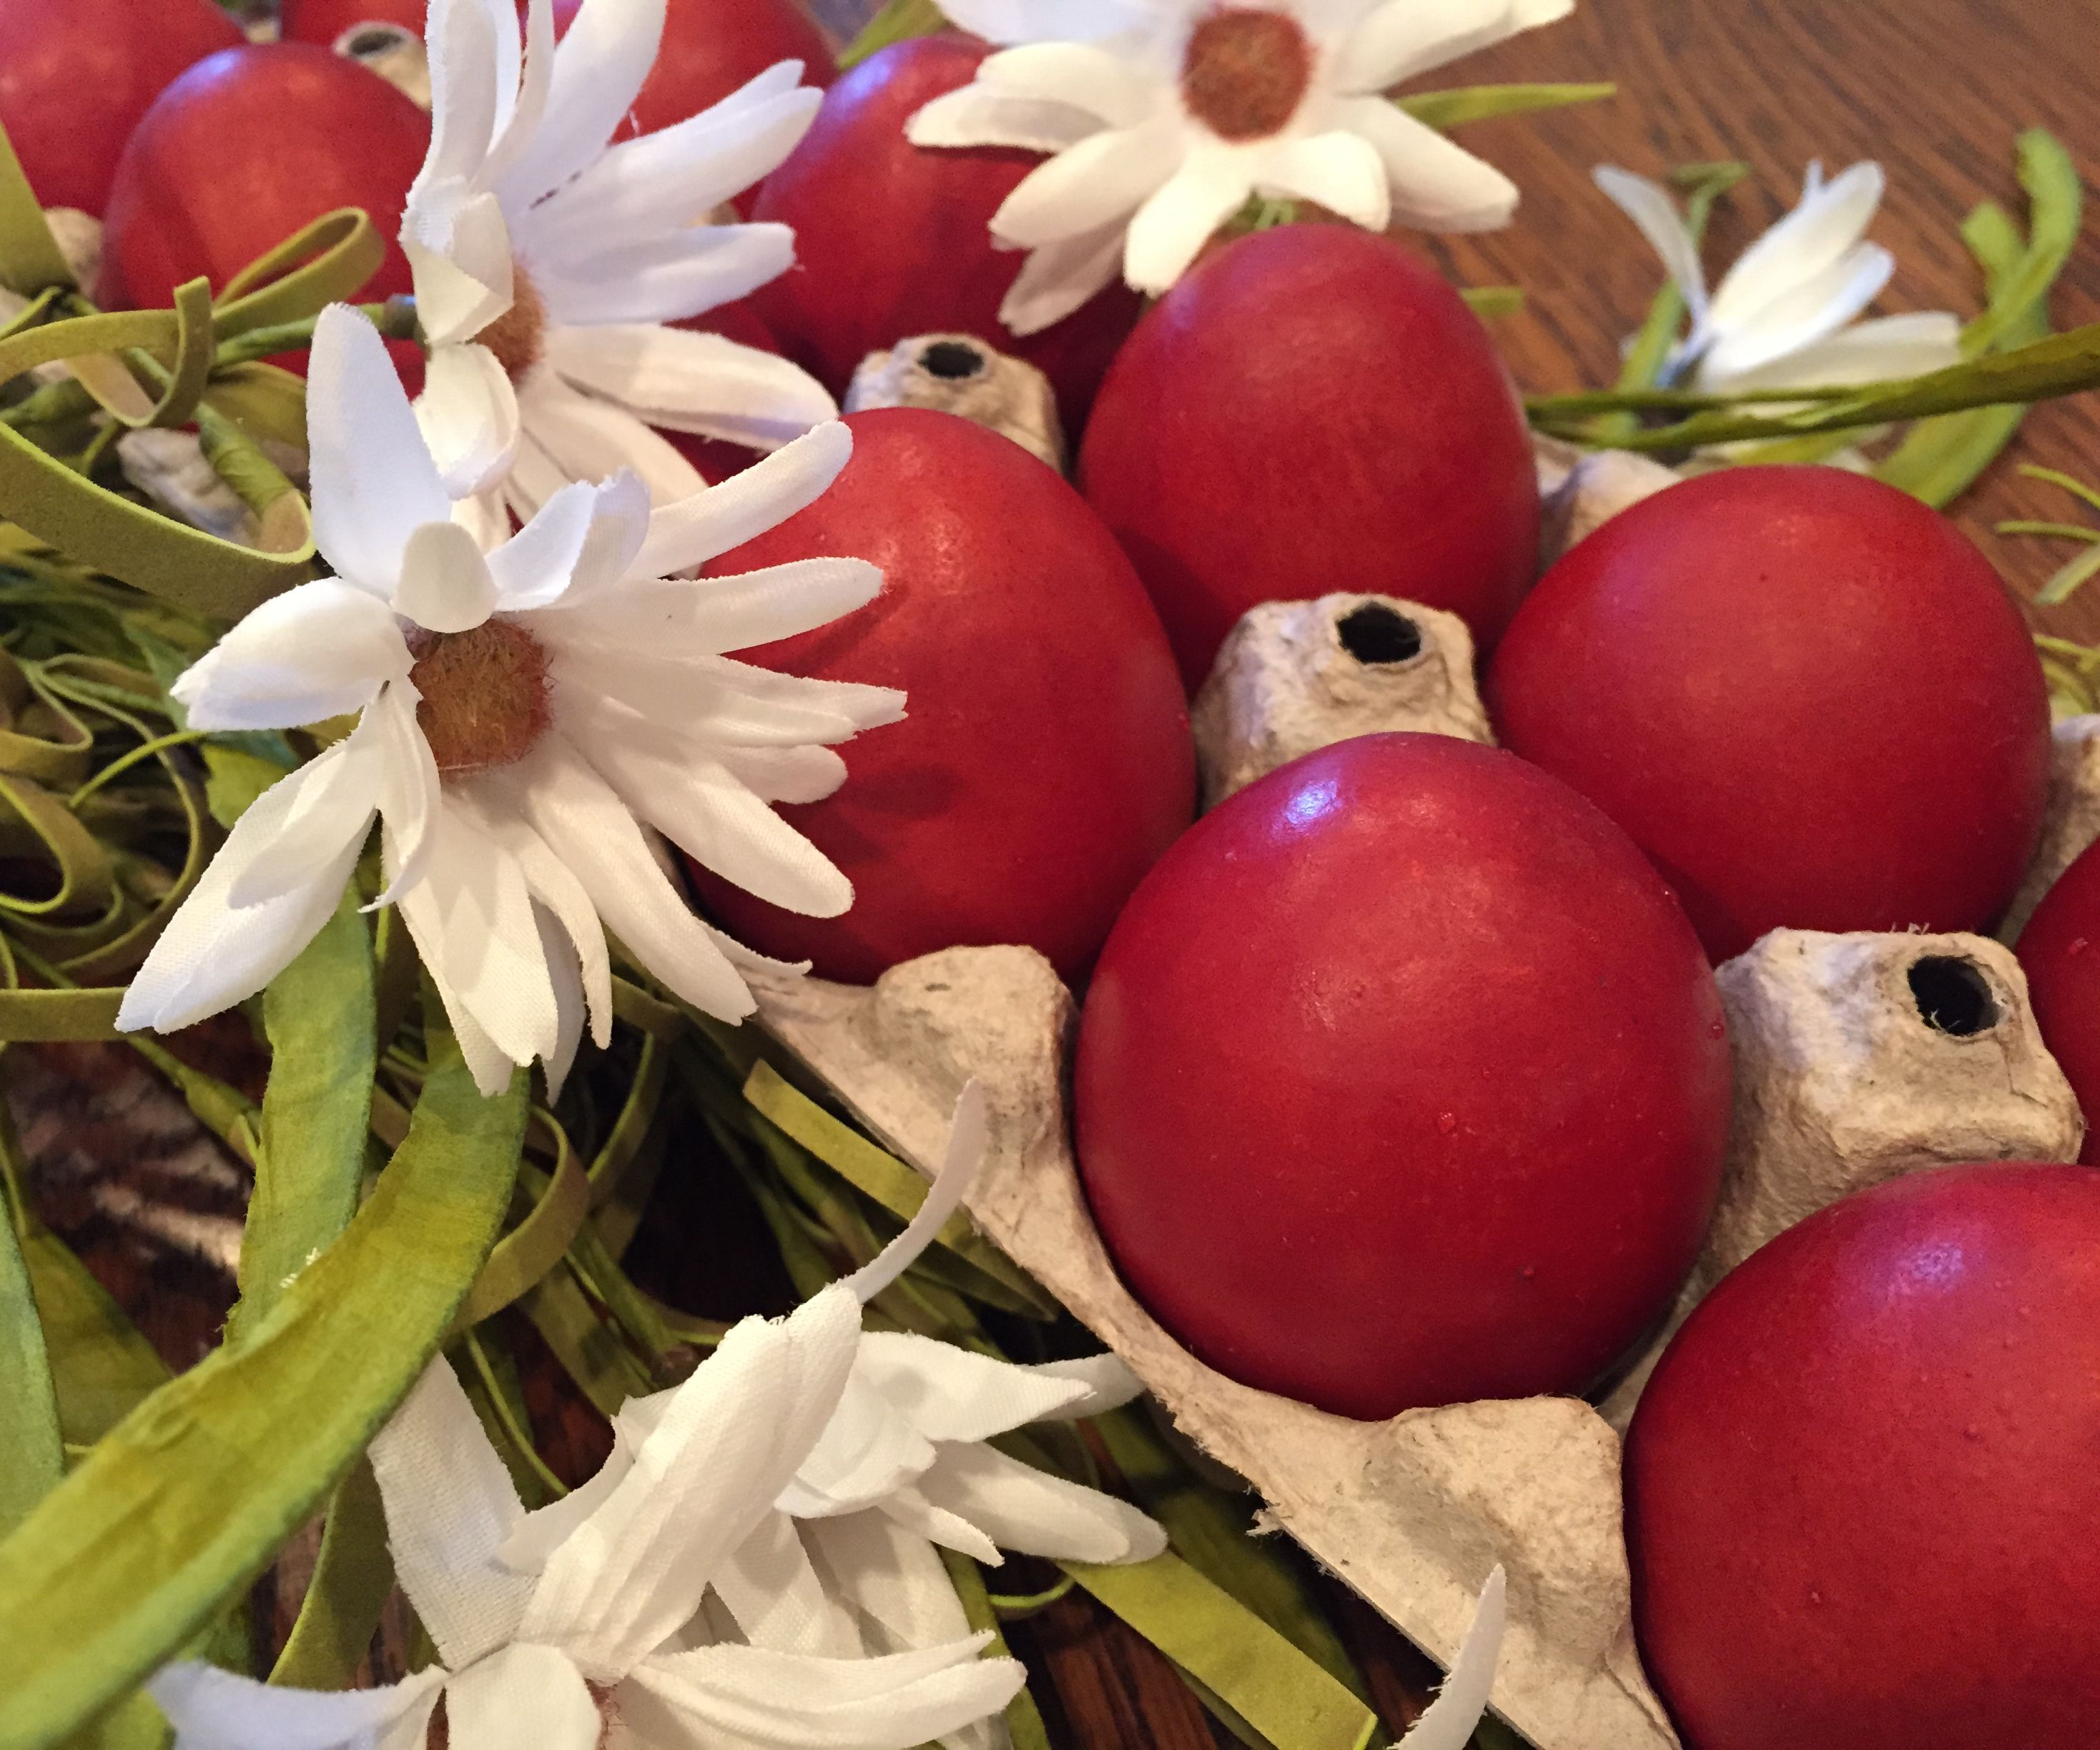 How to Dye Easter Eggs With Dried Onions Skins